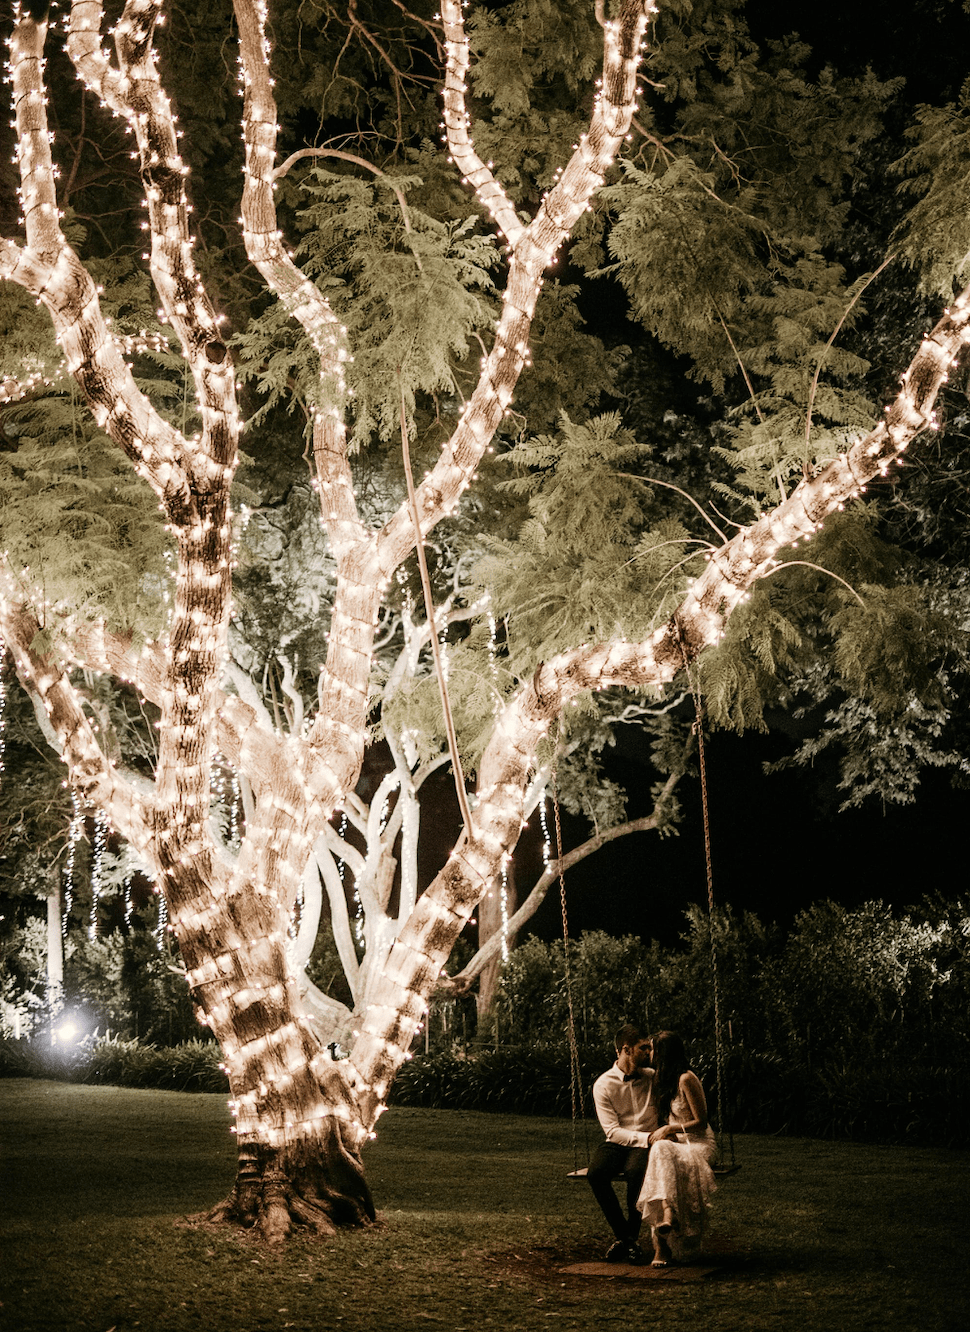 Couple on swing in a garden full of fairy lights